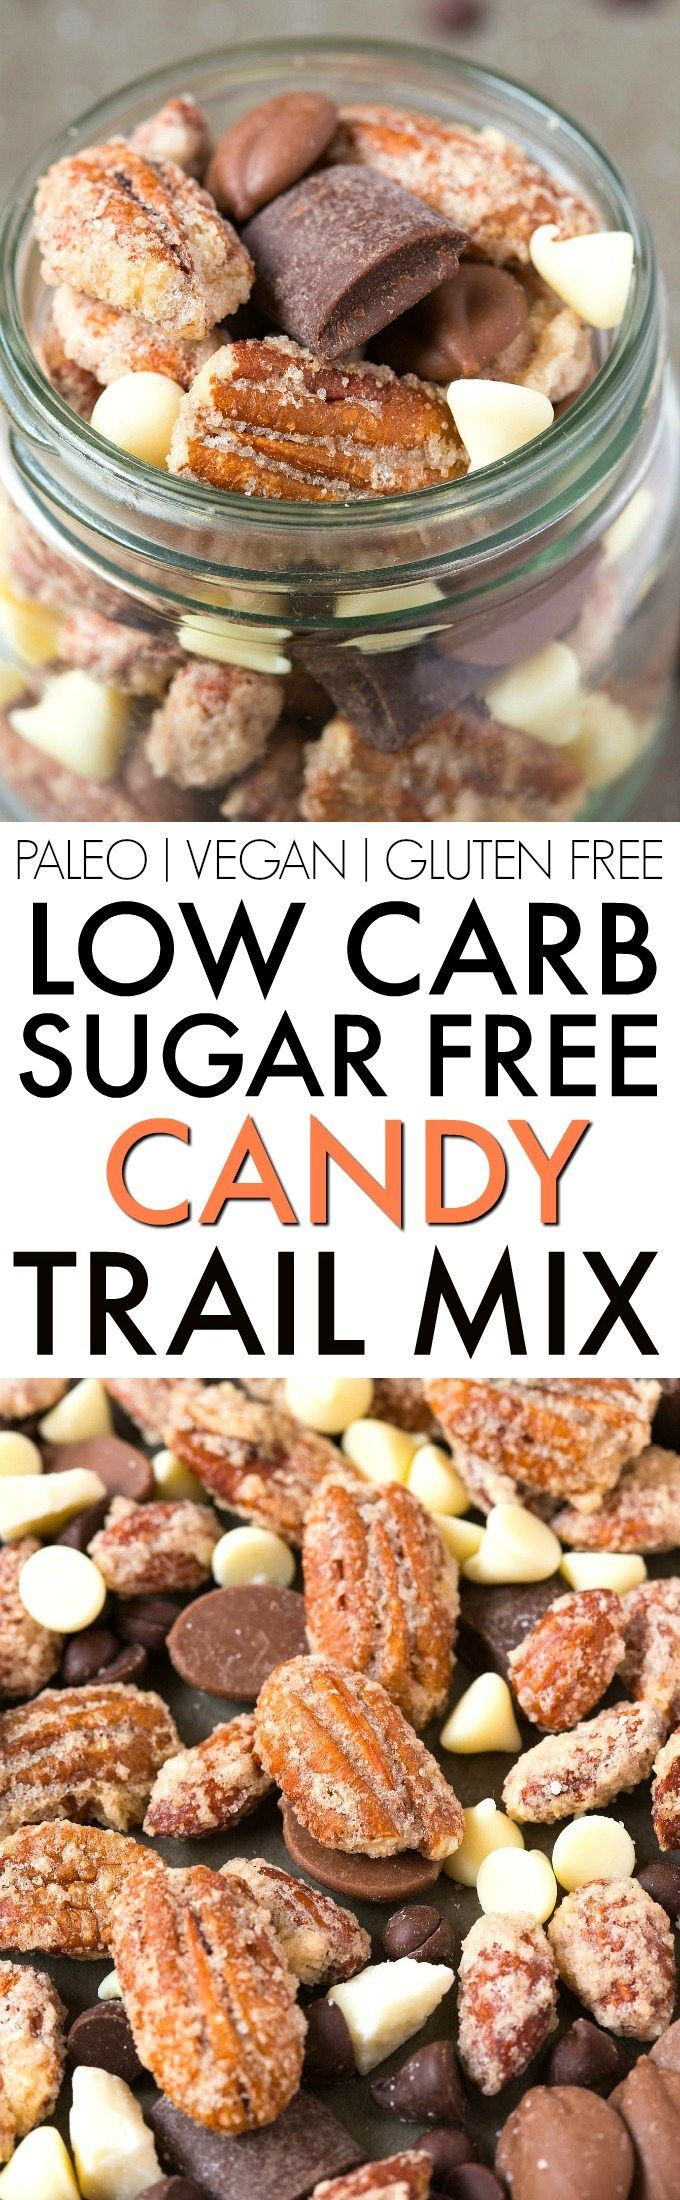 Best 25 sugar free candy ideas on pinterest low carb peanut low carb sugar free candy trail mix v gf paleo a negle Choice Image